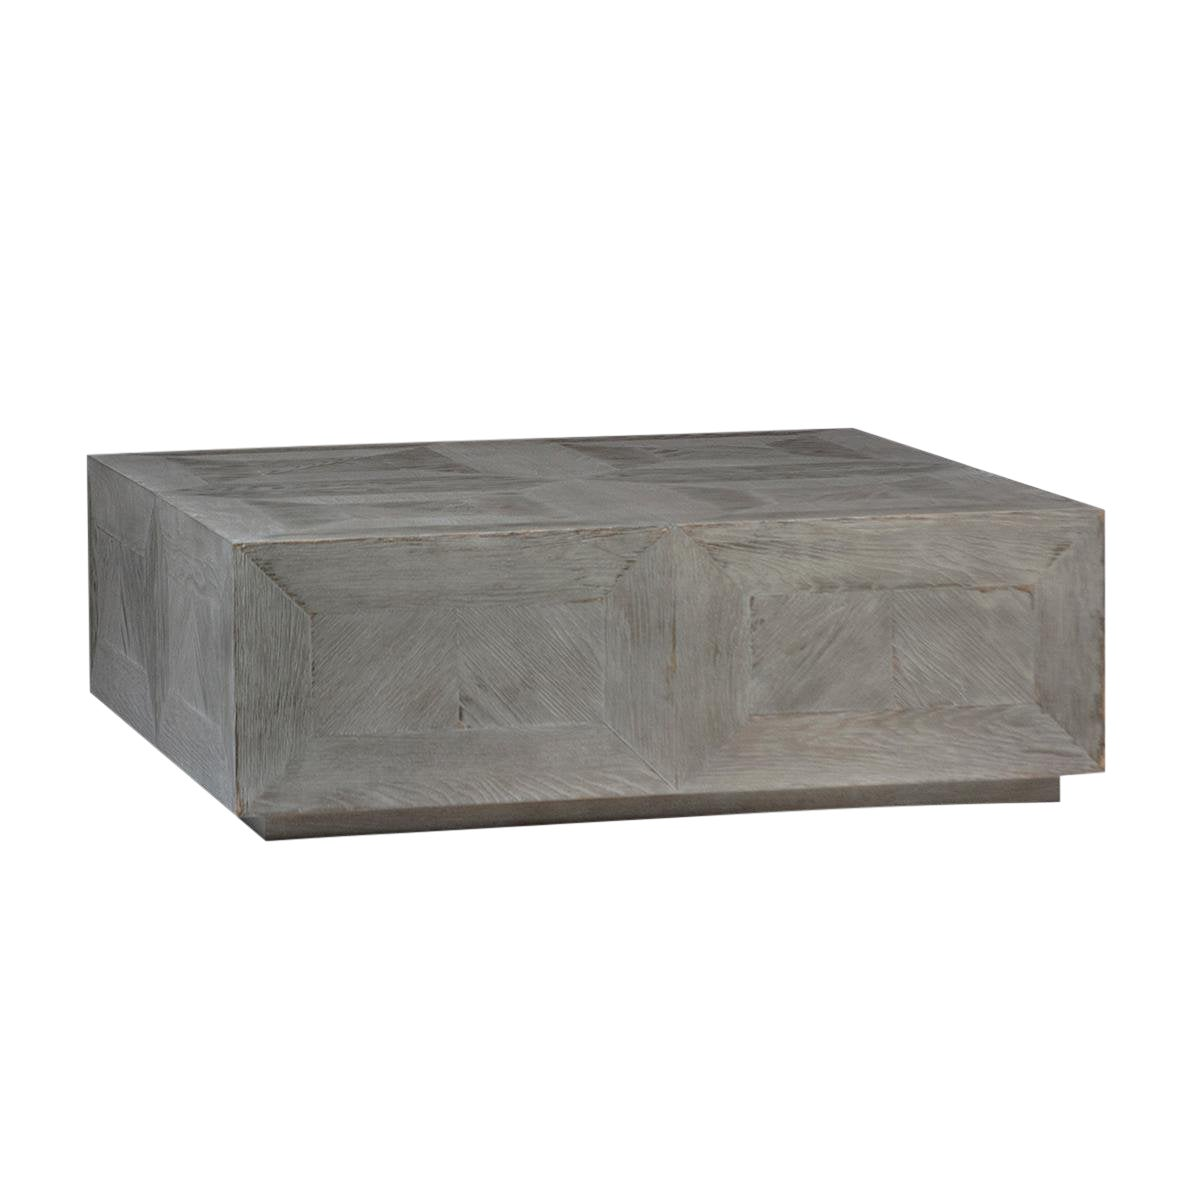 Grey wood block coffee table chairish